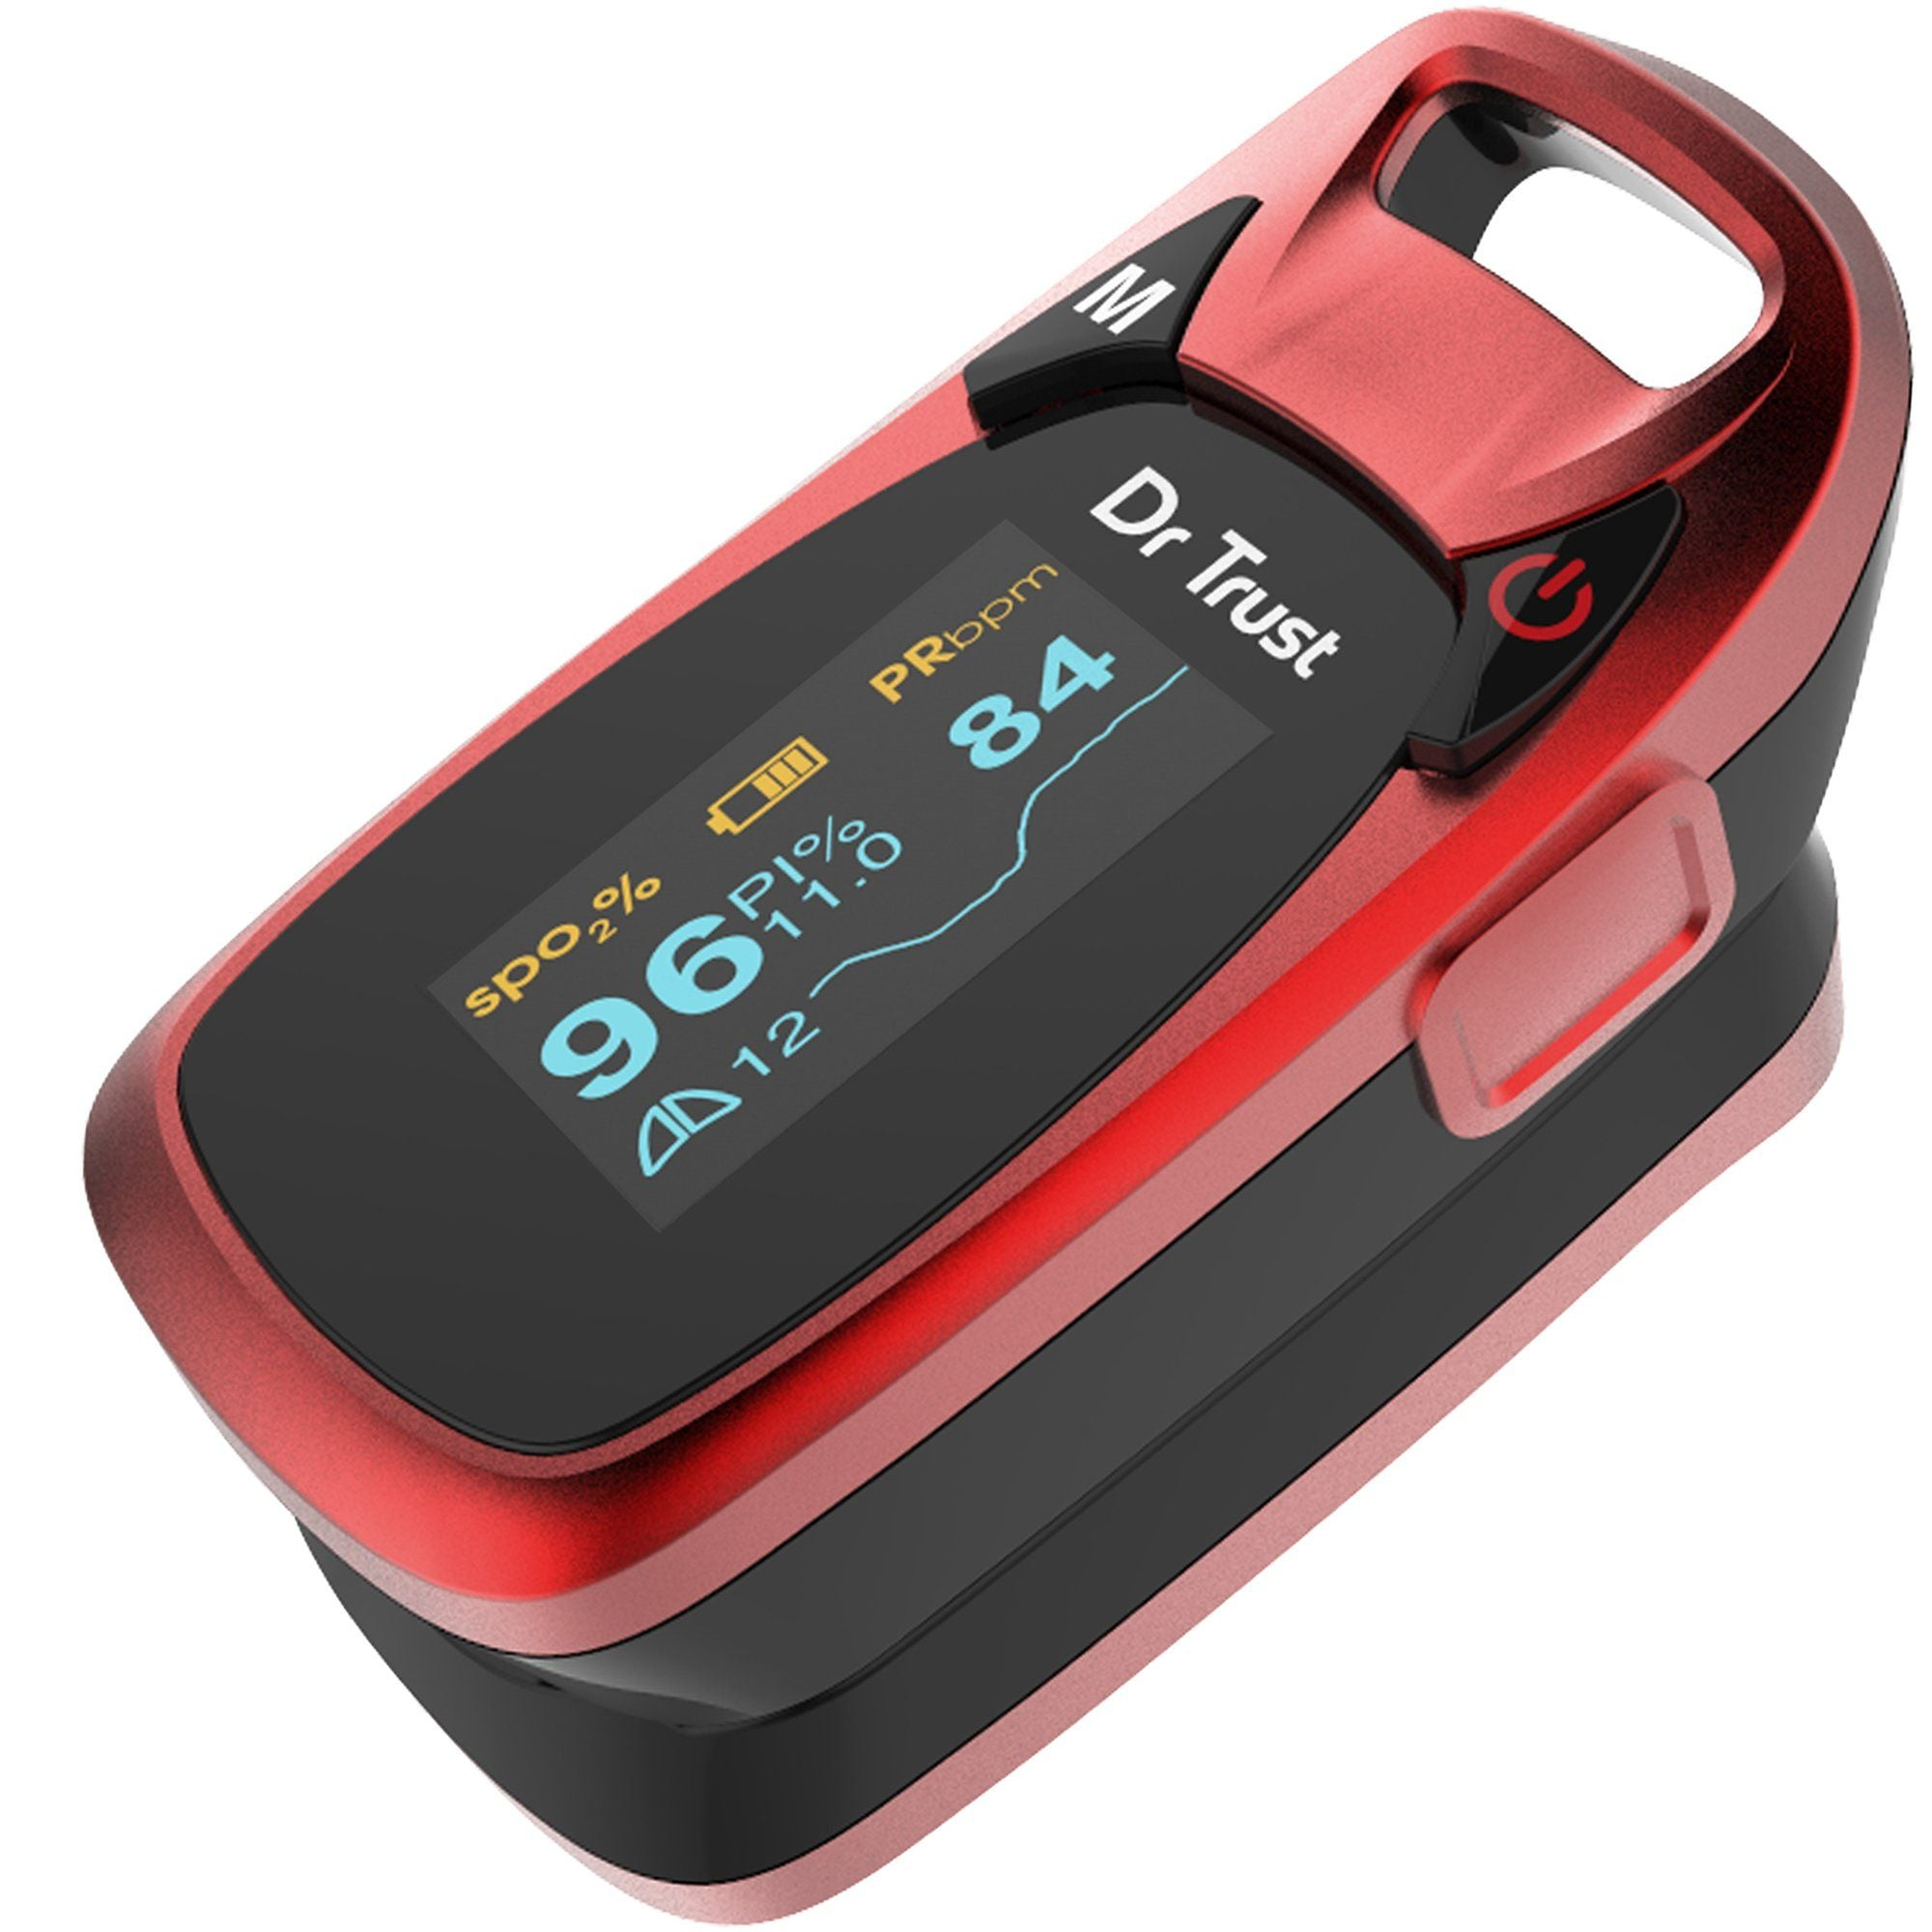 Dr Trust USA Professional Series Finger Tip Pulse Oximeter (Red) 203 - Dr Trust USA